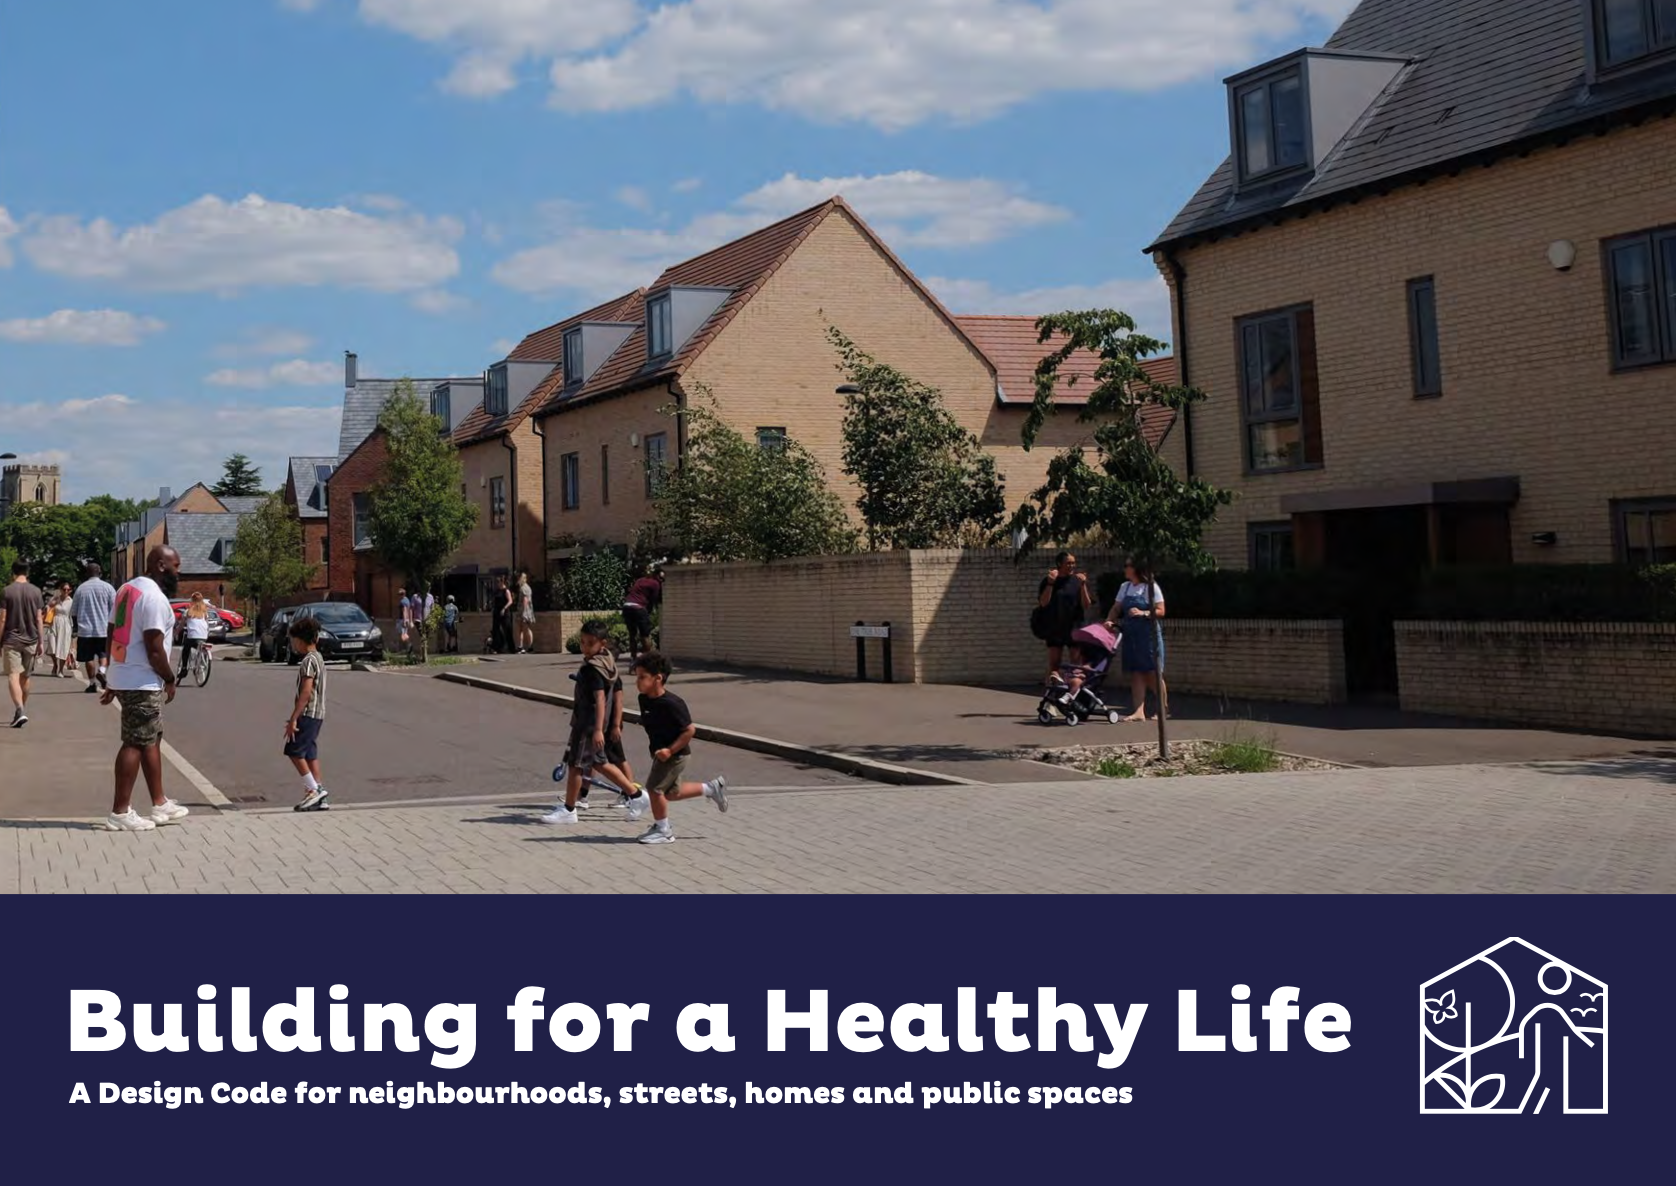 Design South East – Using Building for a Healthy Life